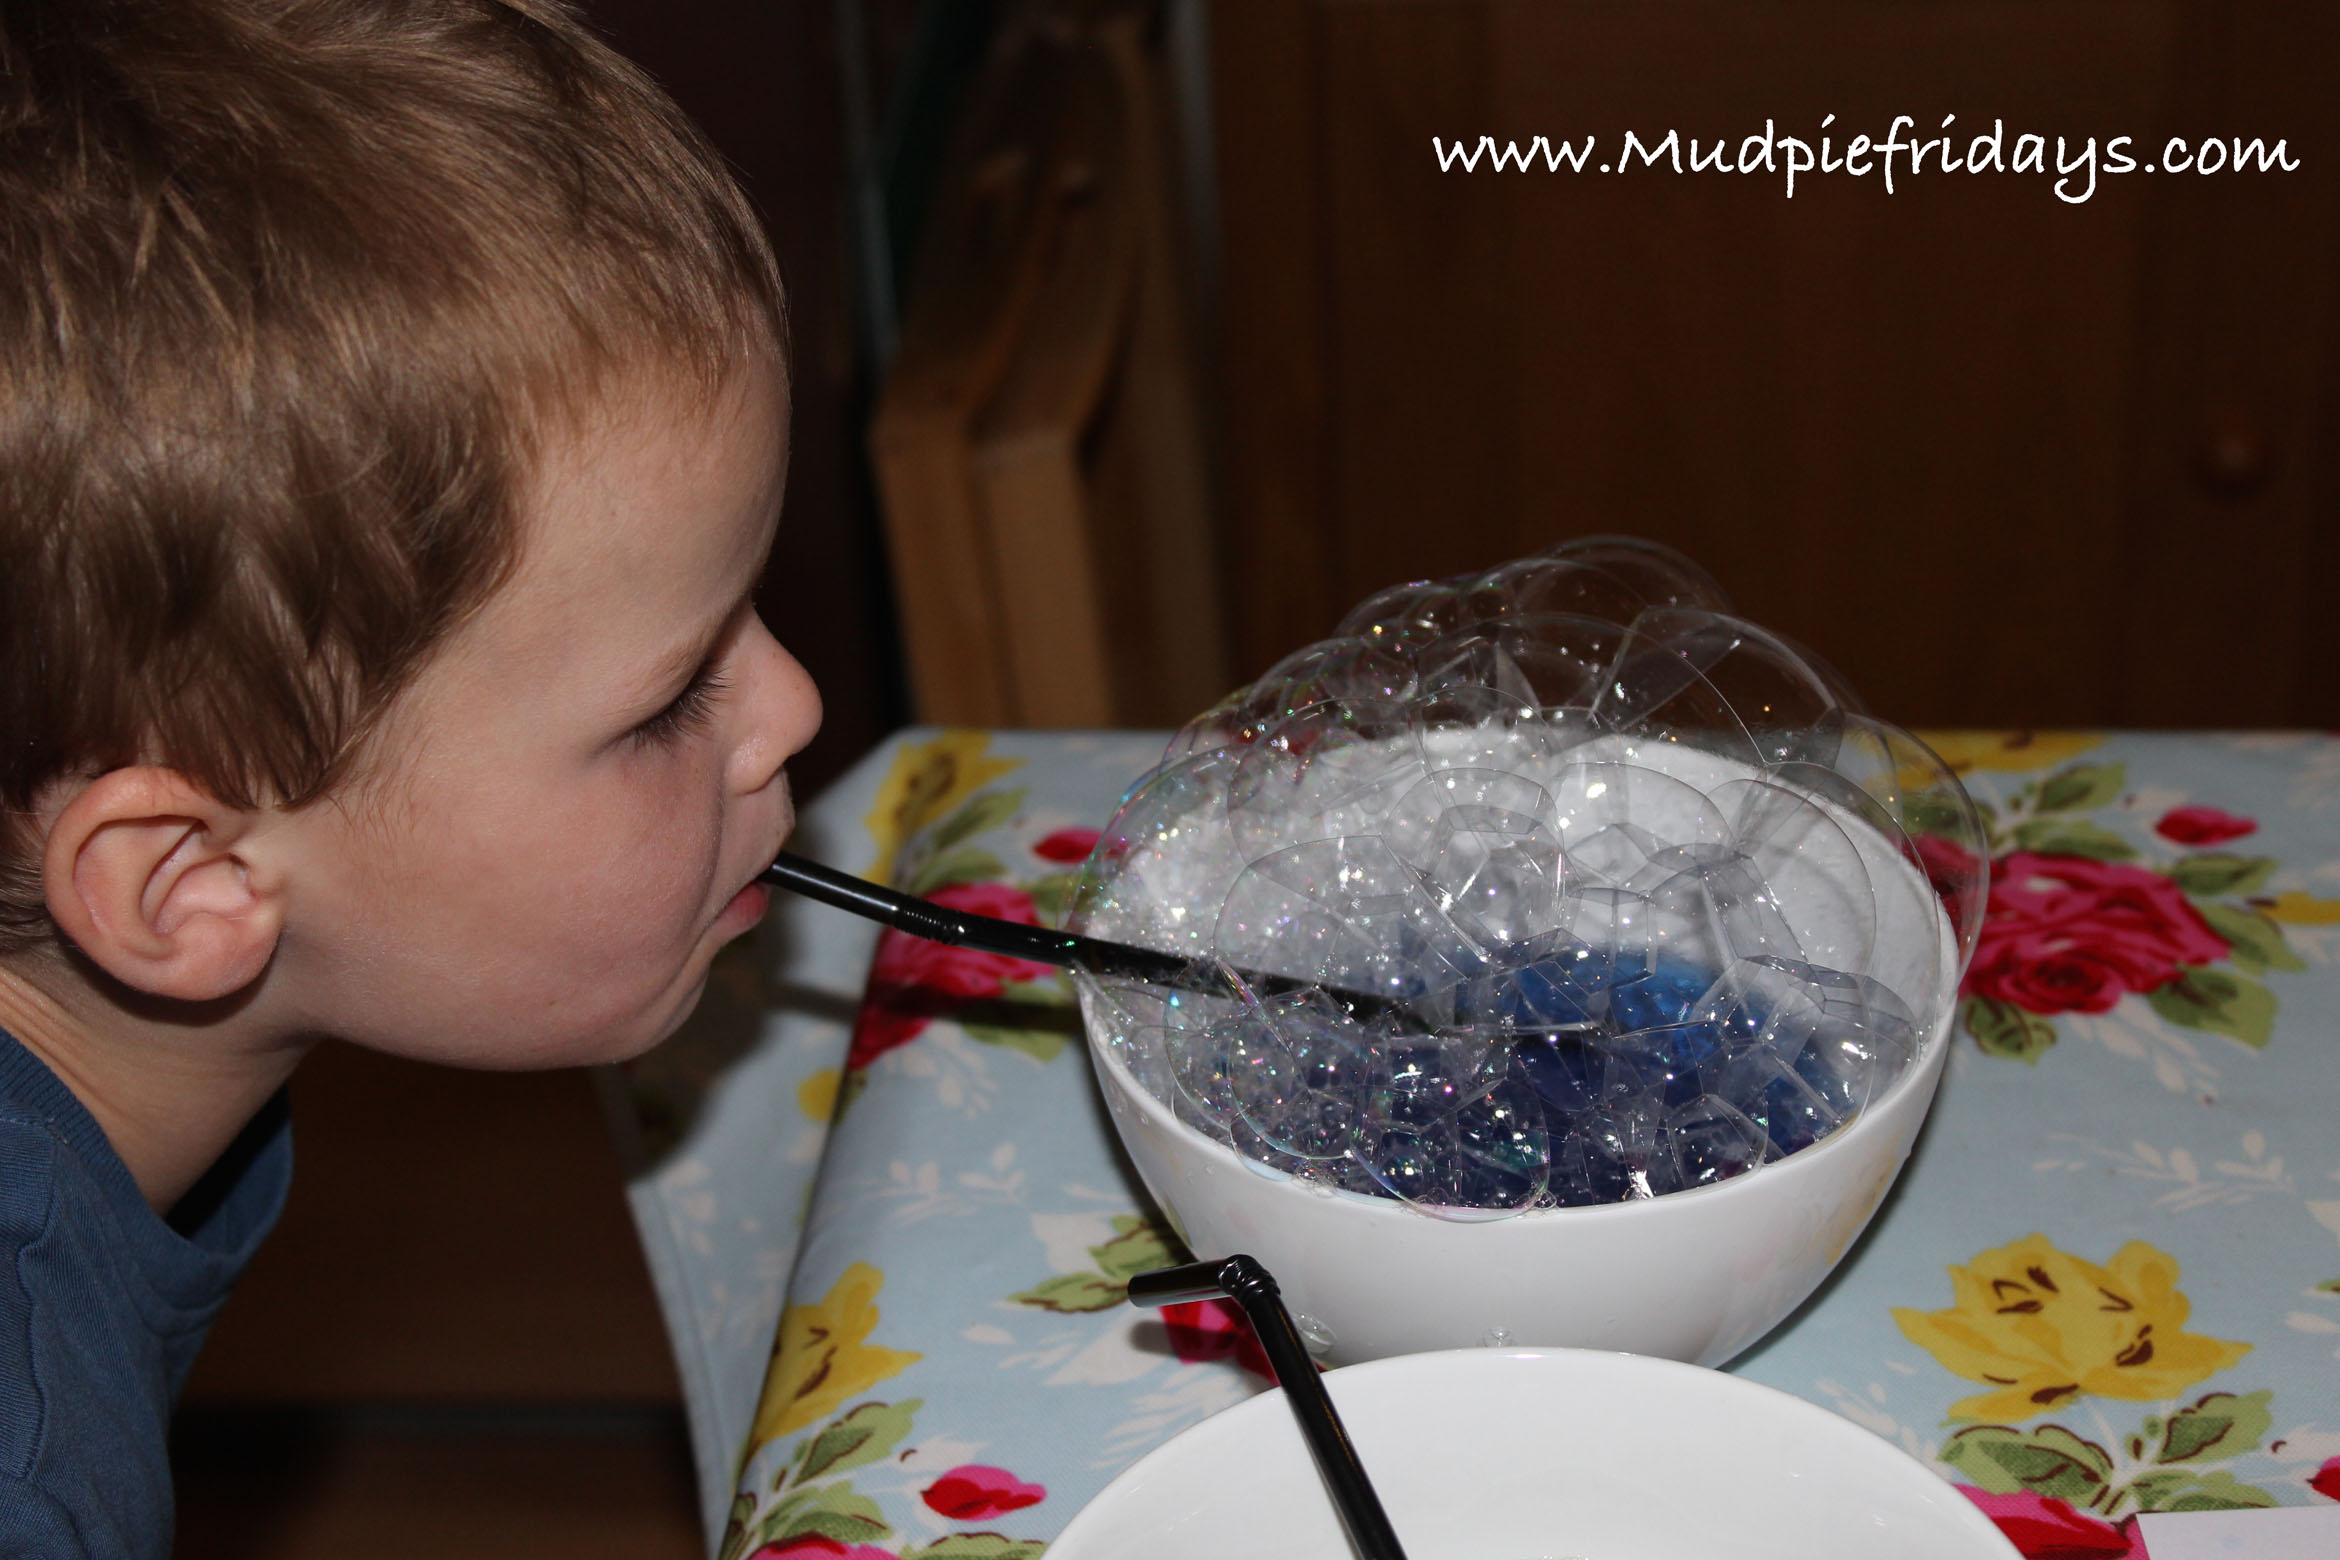 Painting with Bubbles